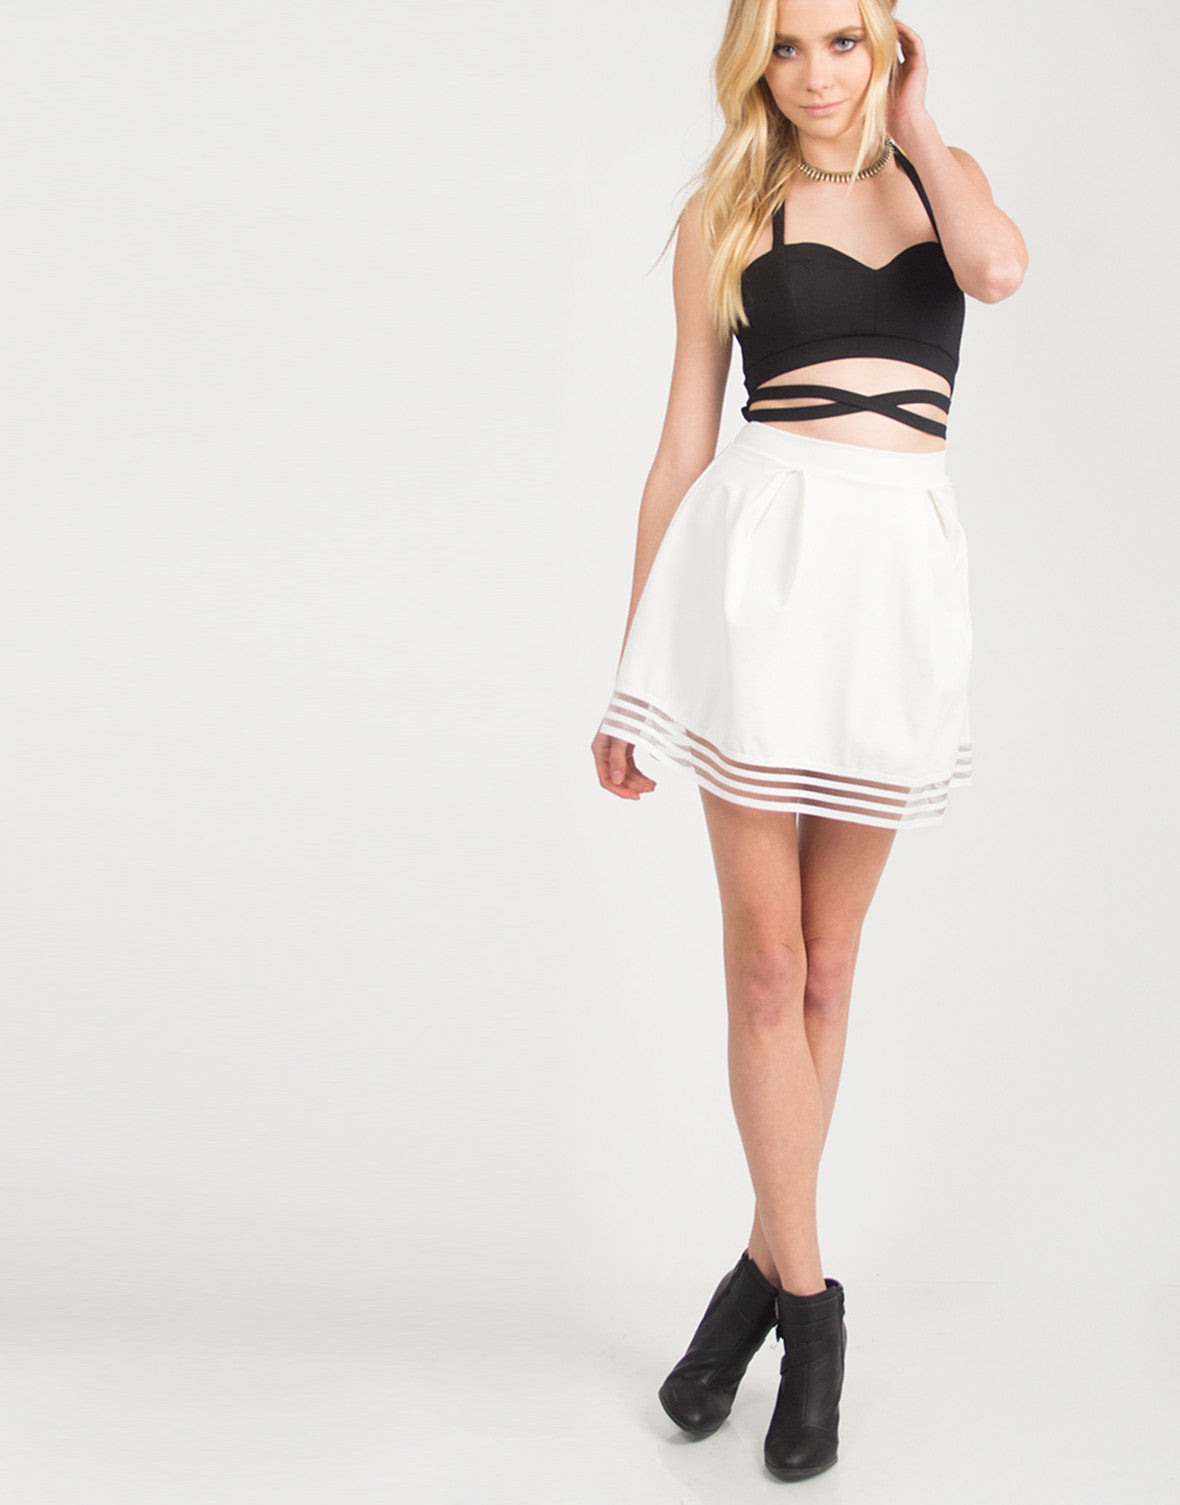 Criss Cross Front and Back Cropped Top